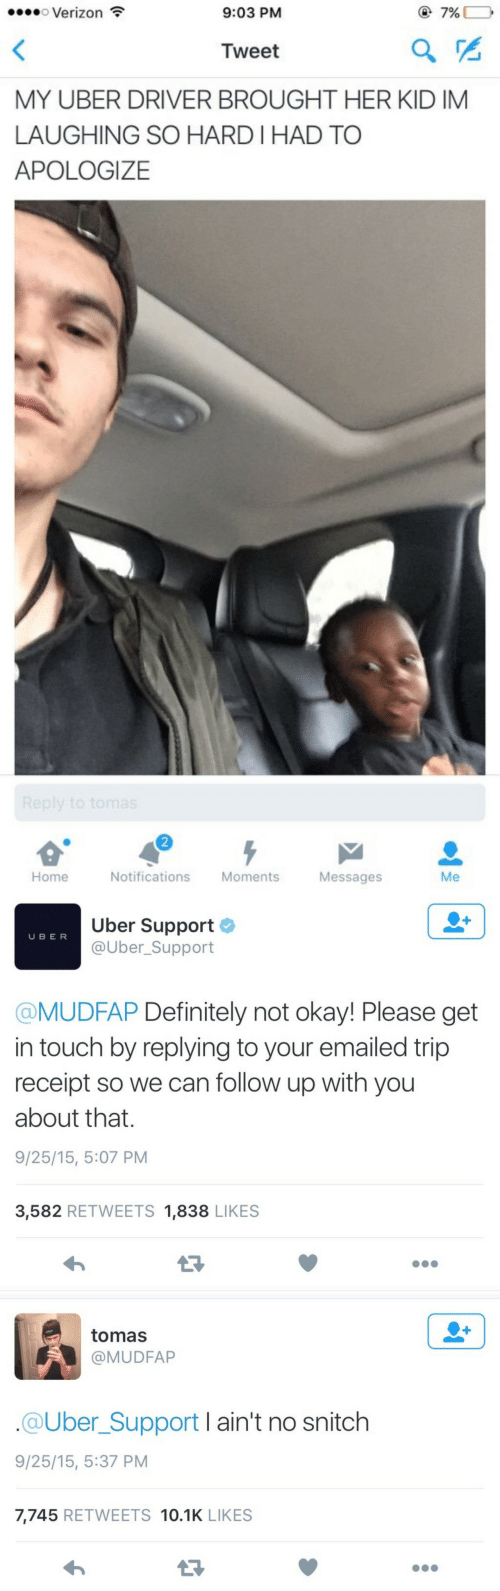 Brought Her: o Verizon  9:03 PM  @7%  Tweet  MY UBER DRIVER BROUGHT HER KID IM  LAUGHING SO HARD I HAD TO  APOLOGIZE  2  Home  Notifications Moments  Messages  Me   Uber Support  @Uber_Support  U BER  @MUDFAP Definitely not okay! Please get  in touch by replying to your emailed trip  receipt so we can follow up with you  about that.  9/25/15, 5:07 PM  3,582 RETWEETS 1,838 LIKES   tomas  @MUDFAP  @Uber_Support I ain't no snitch  9/25/15, 5:37 PM  7,745 RETWEETS 10.1K LIKES  13